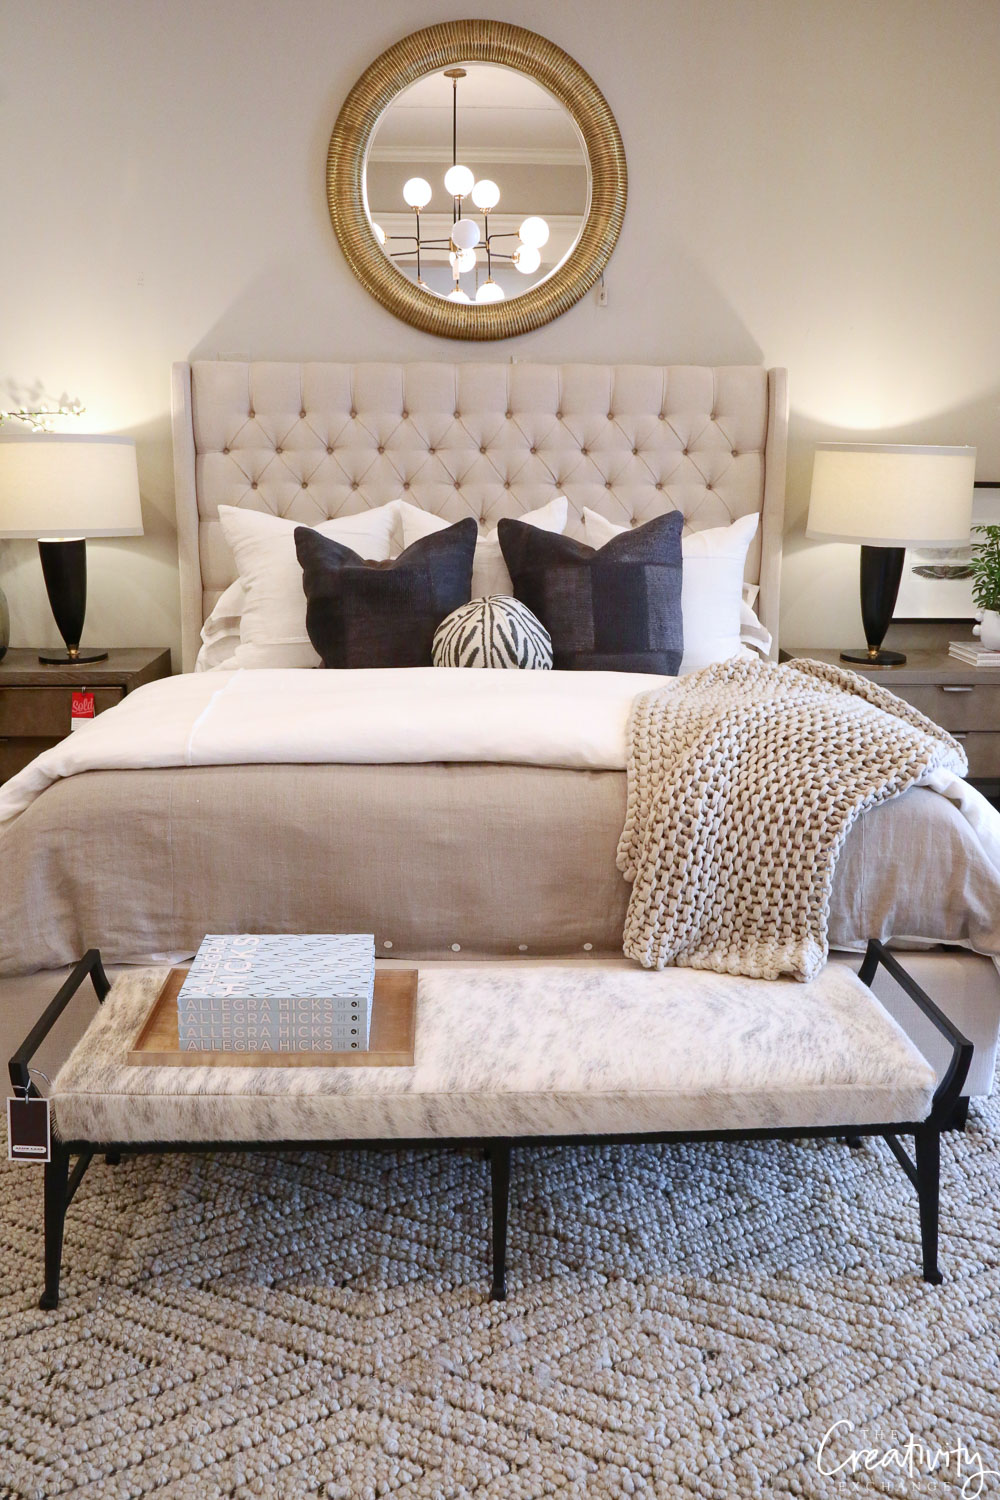 Alice Lane Home bed and bedding